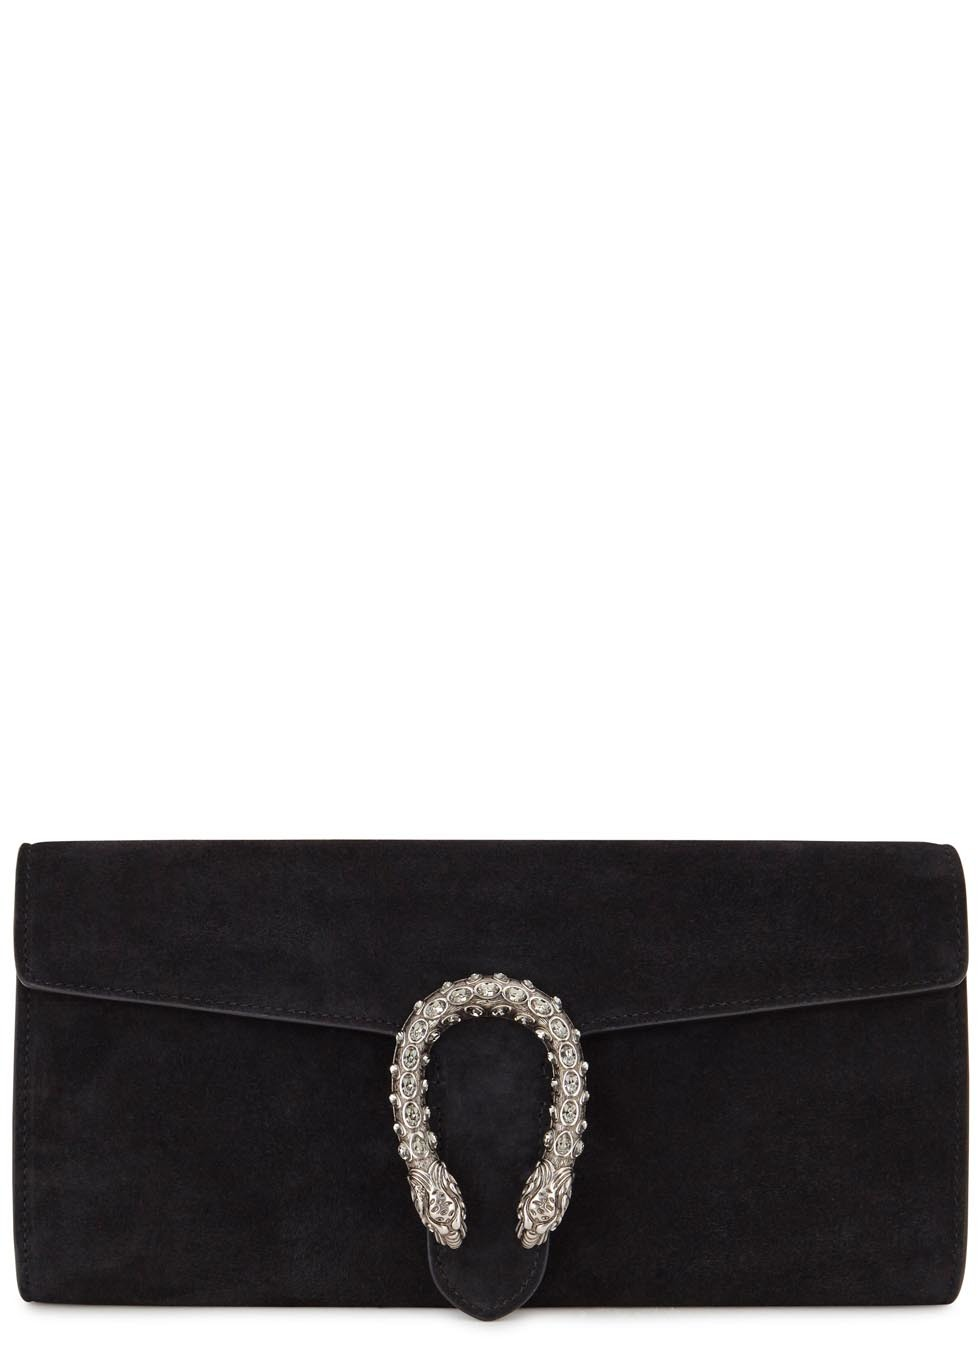 Dionysus Black Suede Clutch - secondary colour: silver; predominant colour: black; occasions: evening, occasion; type of pattern: standard; style: clutch; length: hand carry; size: small; material: suede; pattern: plain; finish: plain; season: s/s 2016